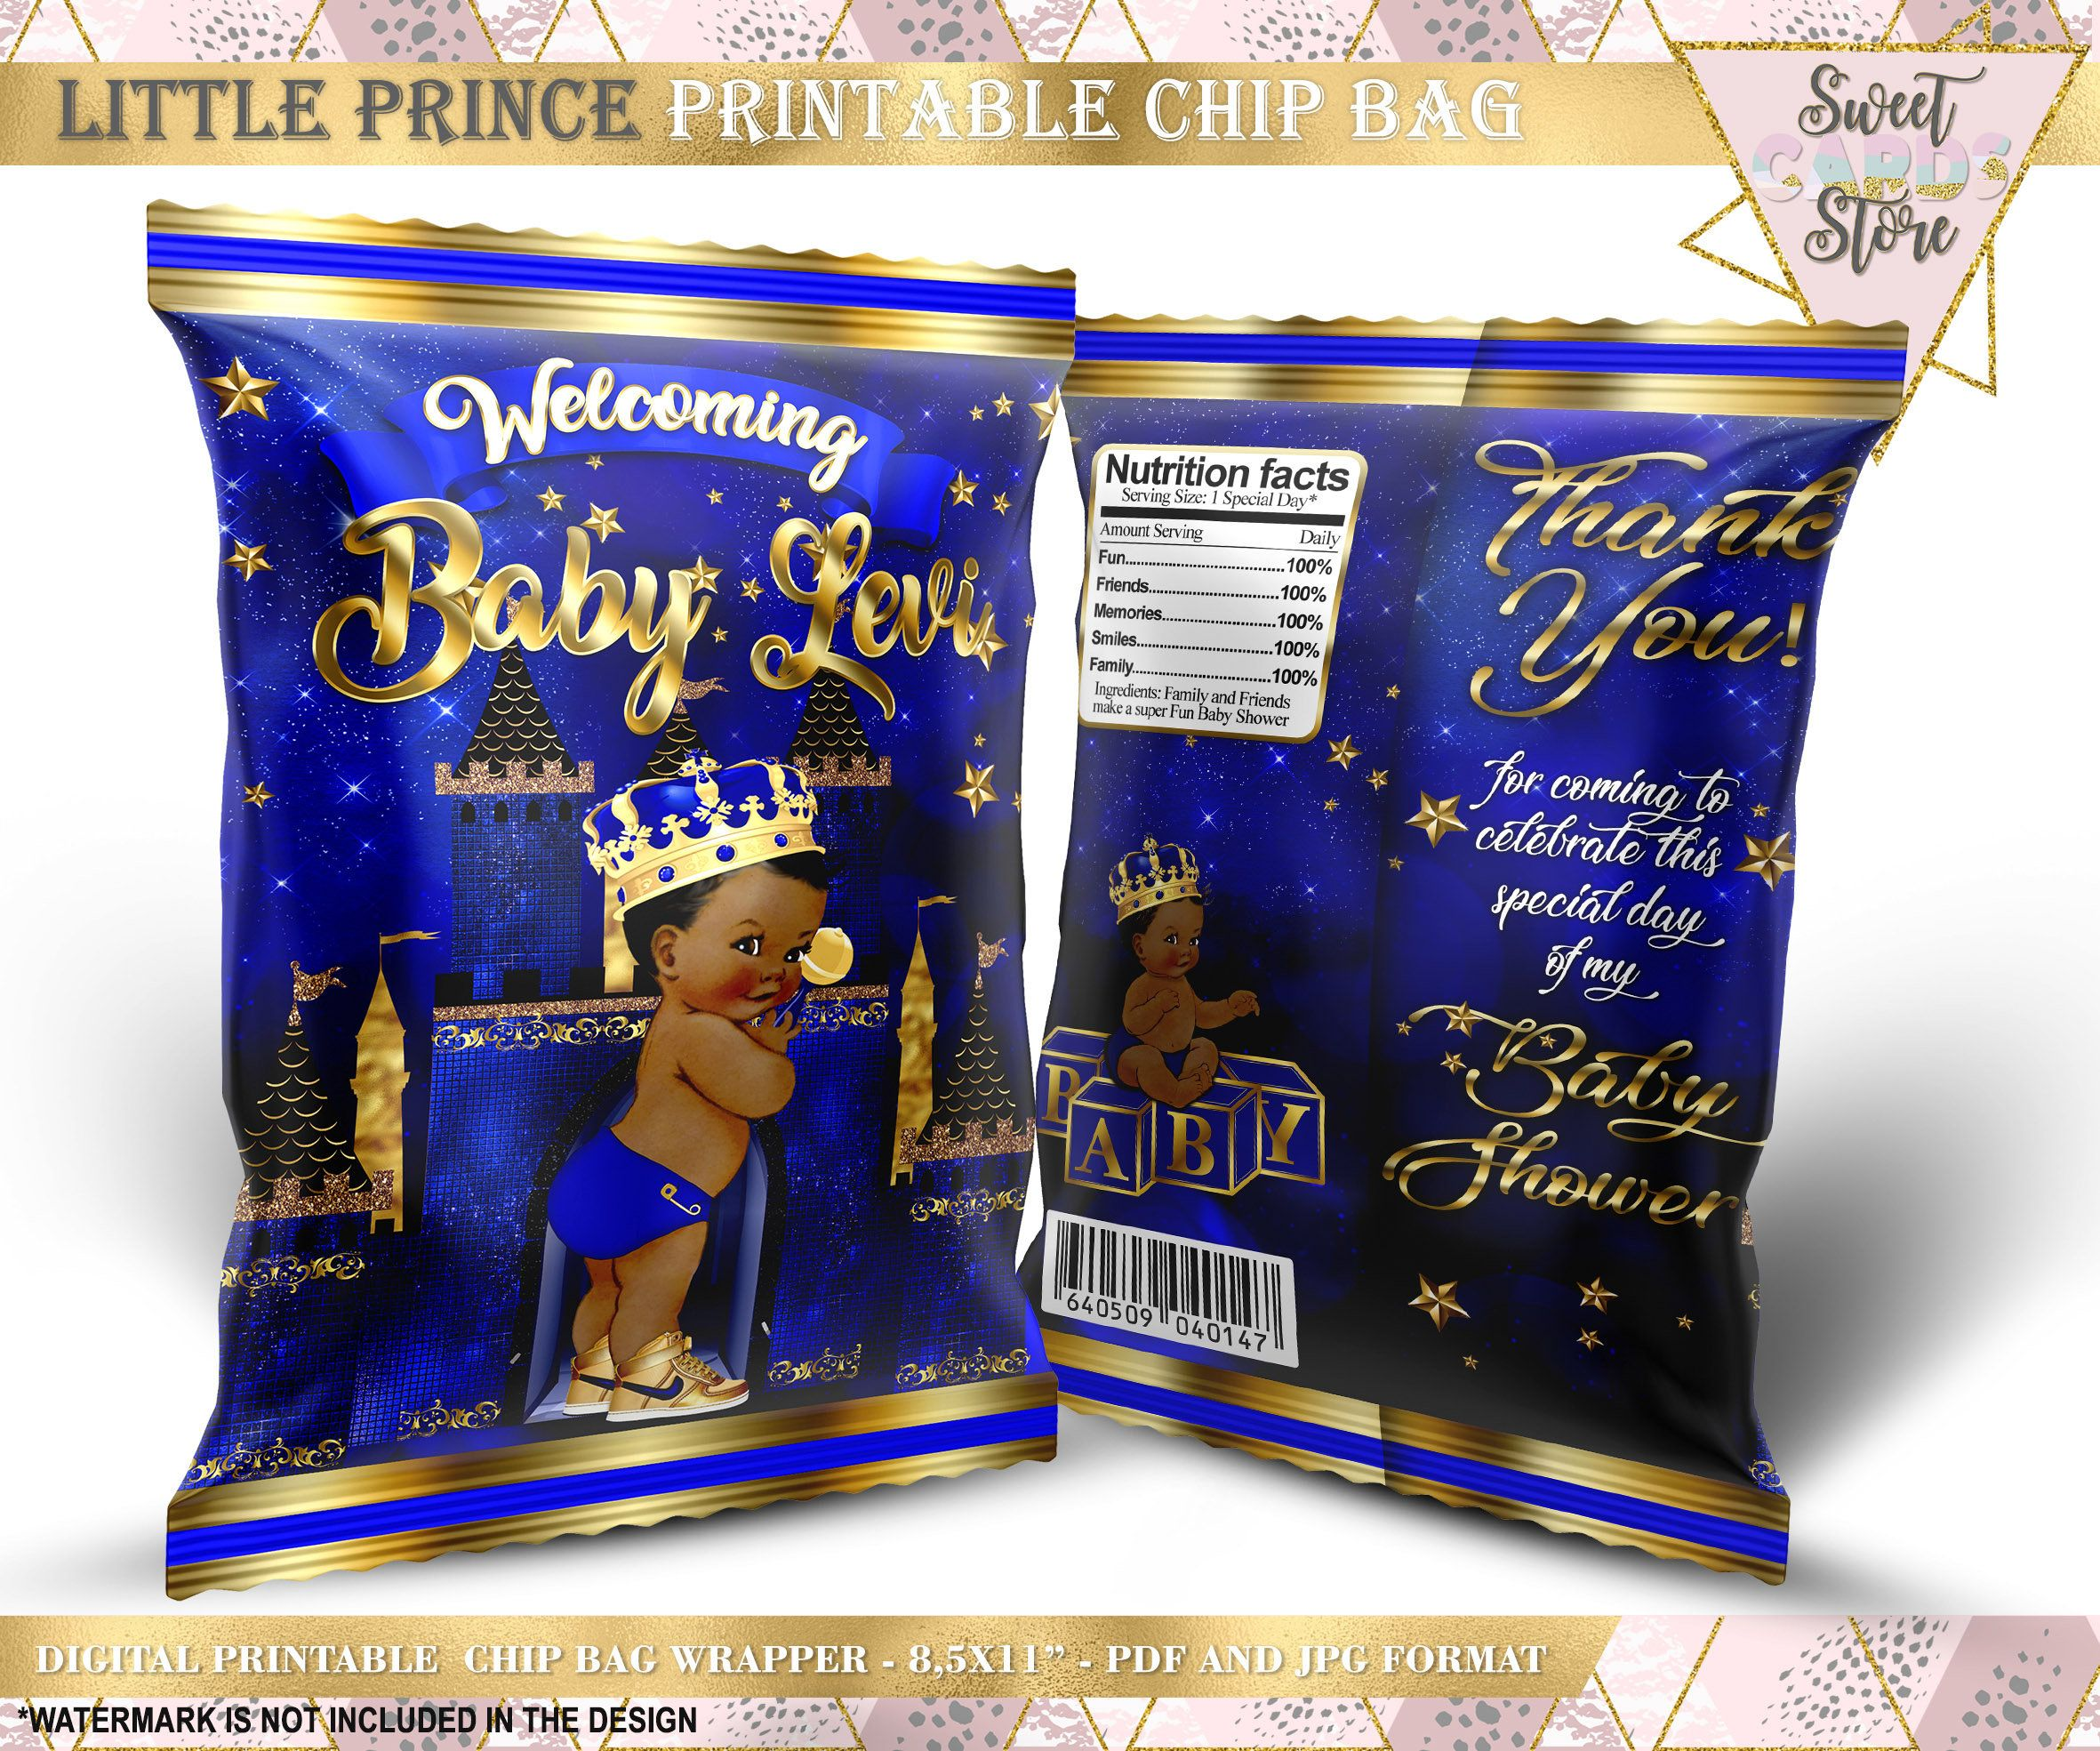 Light Tone Vintage Baby Boy Printable Chip Bags Turquoise Blue Gold Little Prince Rattle Crown Digital Instant Download